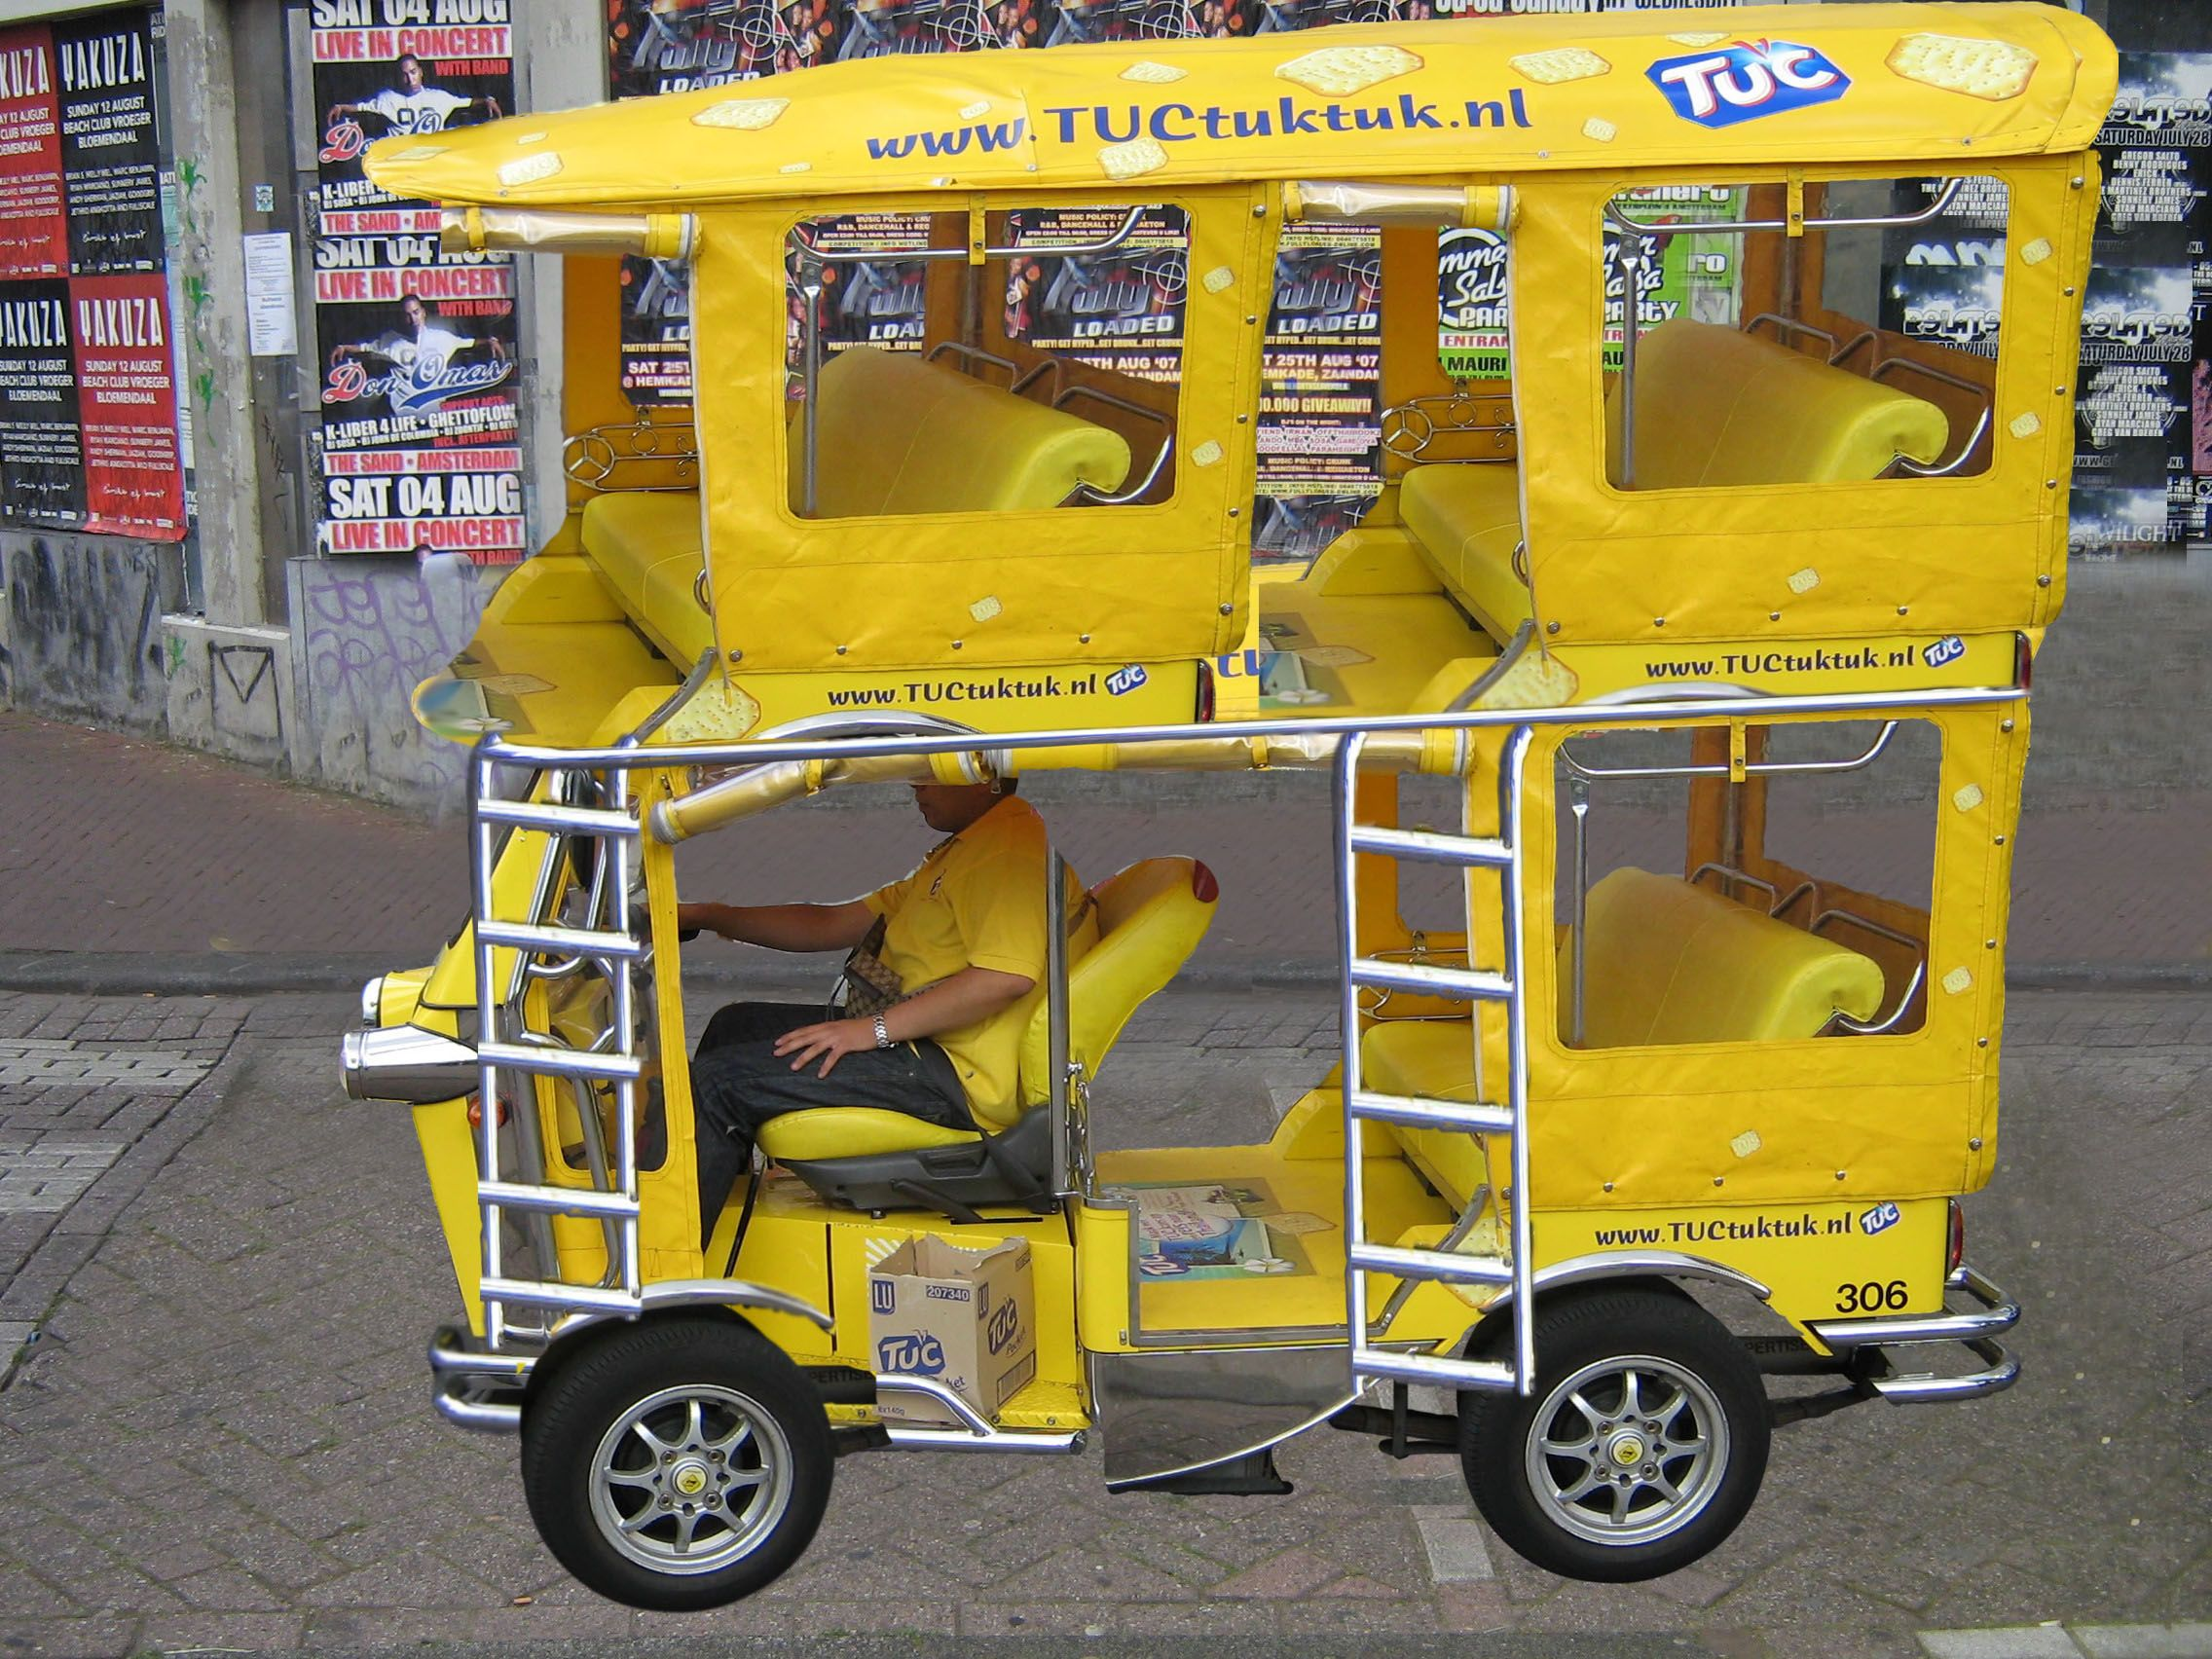 comprar popular 815e5 dea47 A replacement for Stroppy's tuc tuc? - Cambodia Expats ...